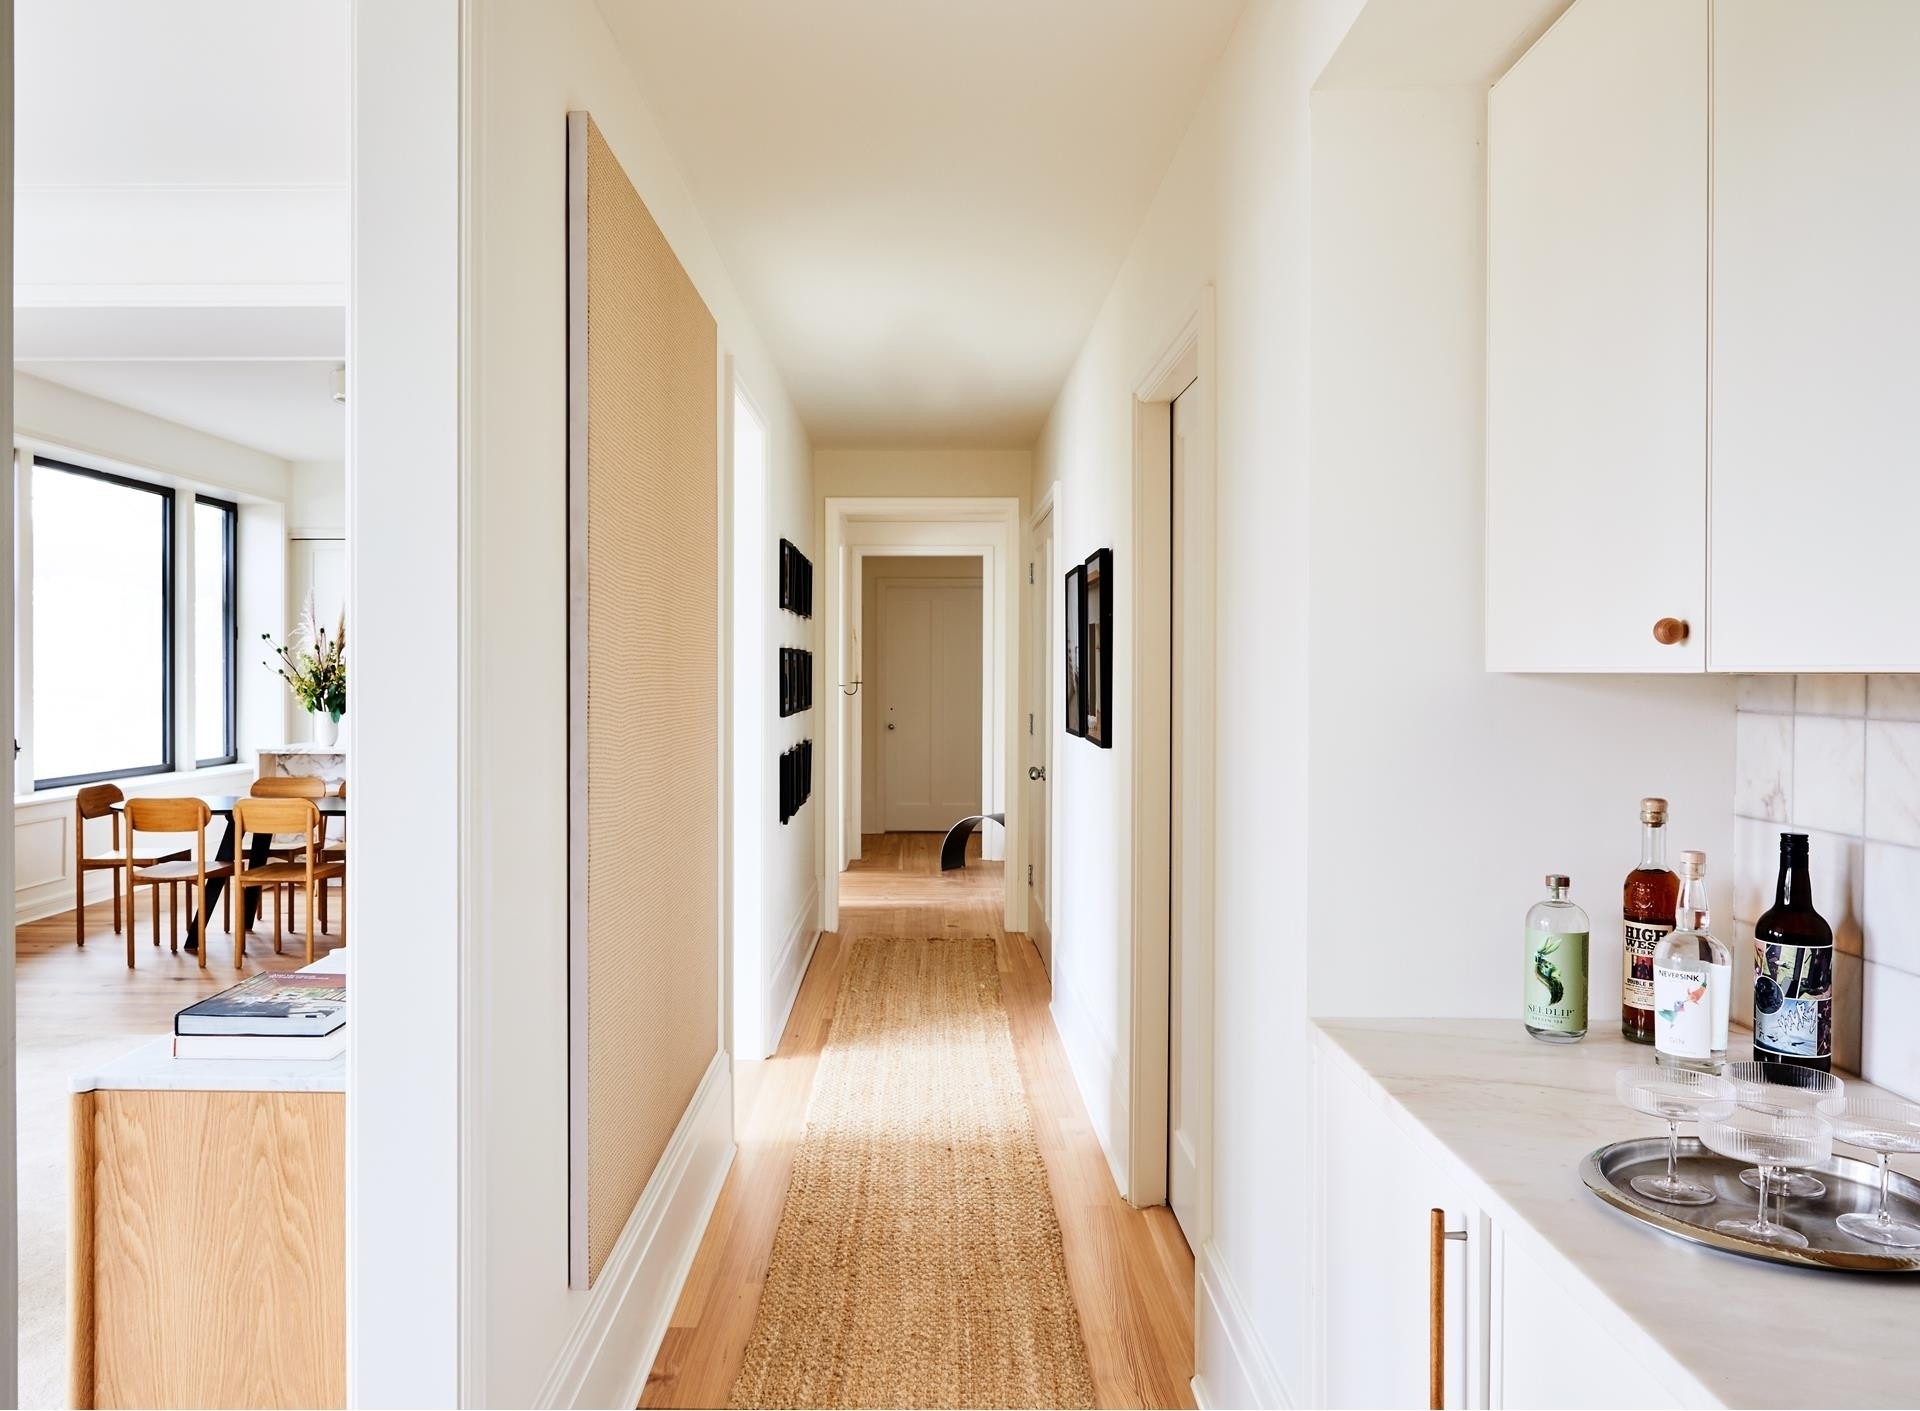 6. Condominiums for Sale at 1 Prospect Park West, 8D Park Slope, Brooklyn, NY 11215